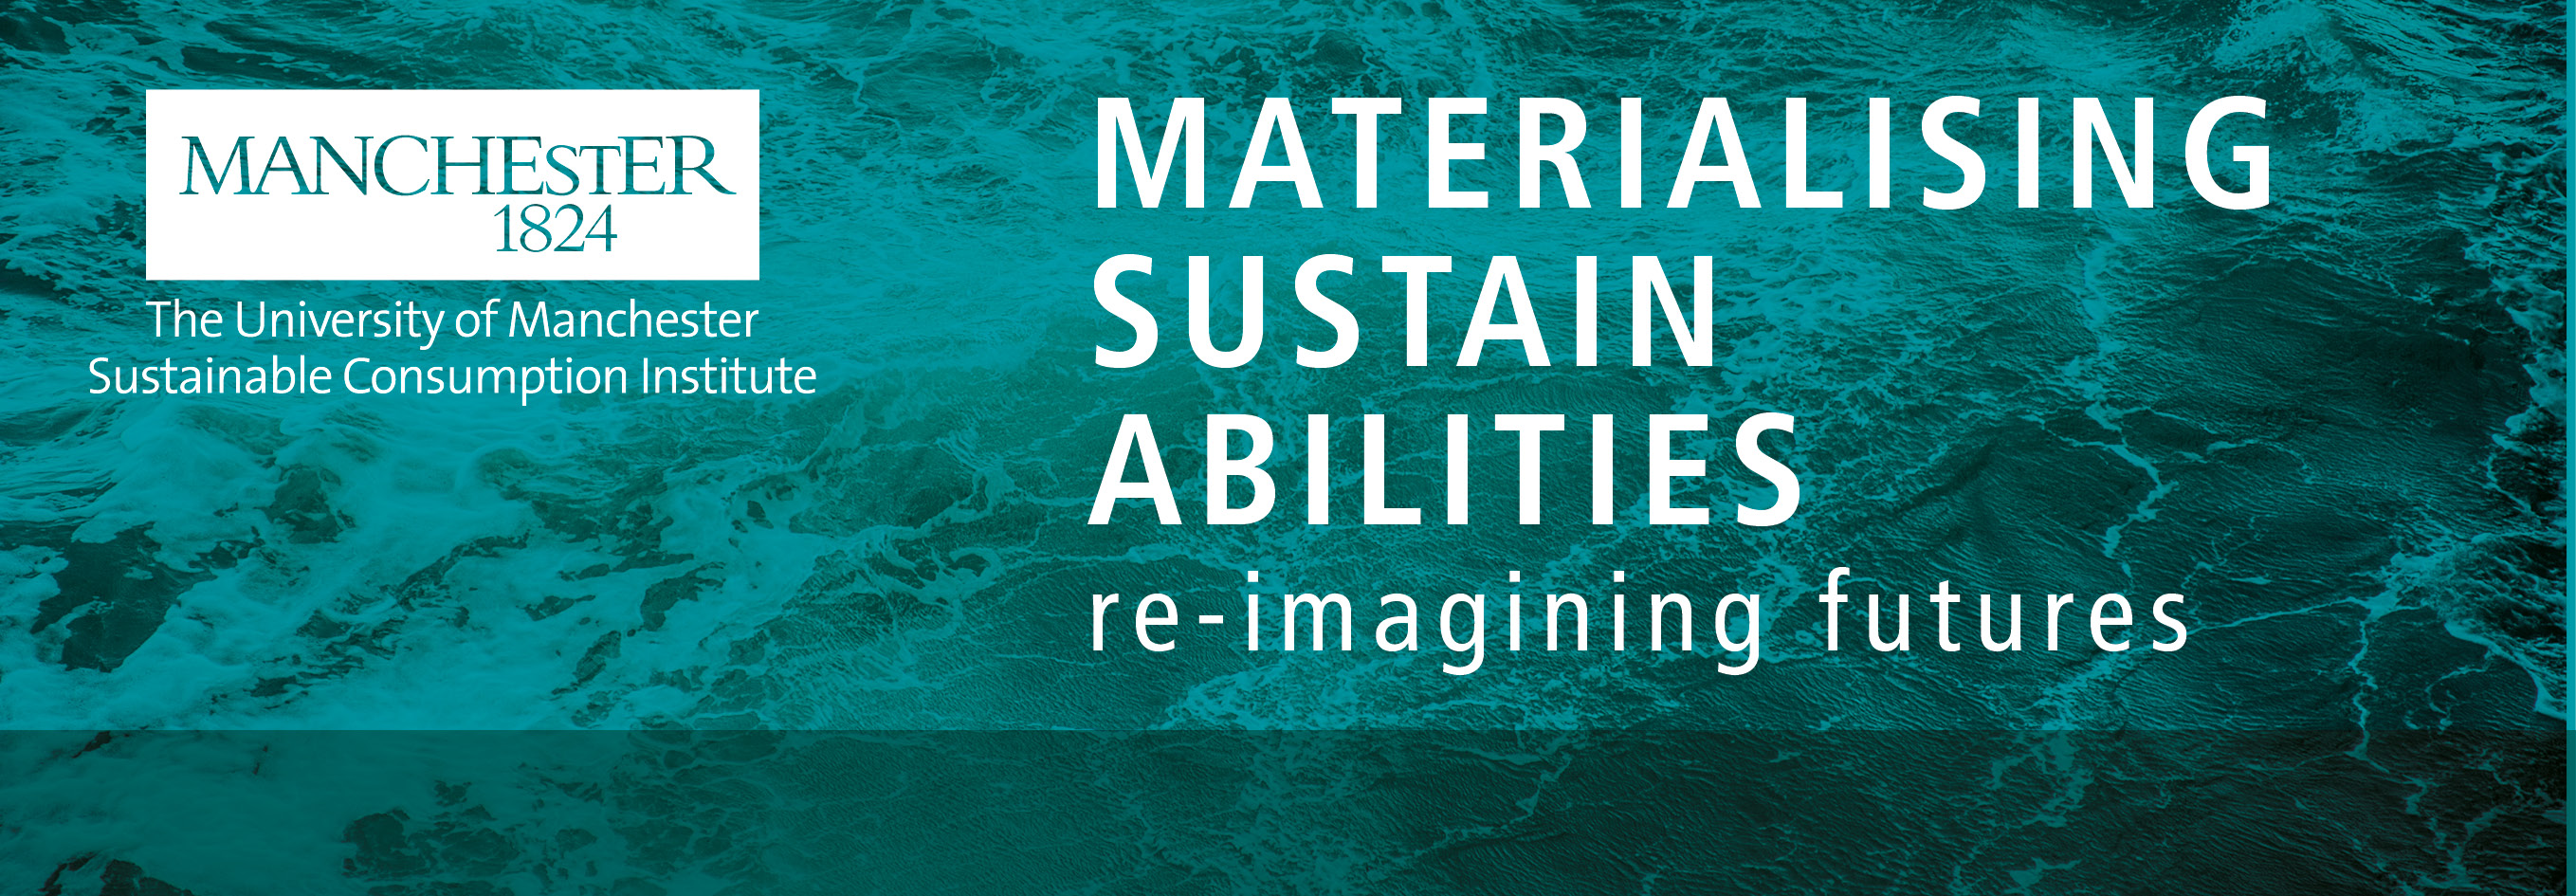 sustainable consumption institute materialising sustain